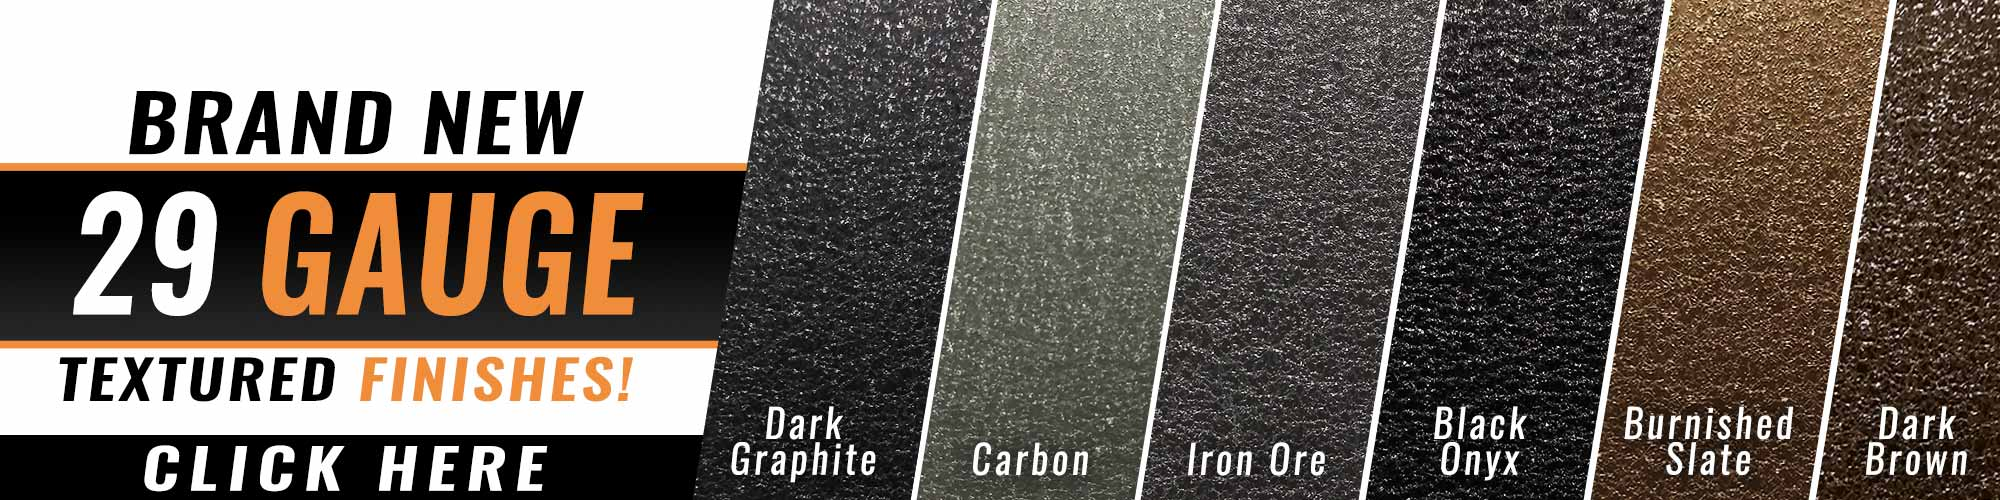 29 Gauge Metal Roofing Textured Finishes Banner